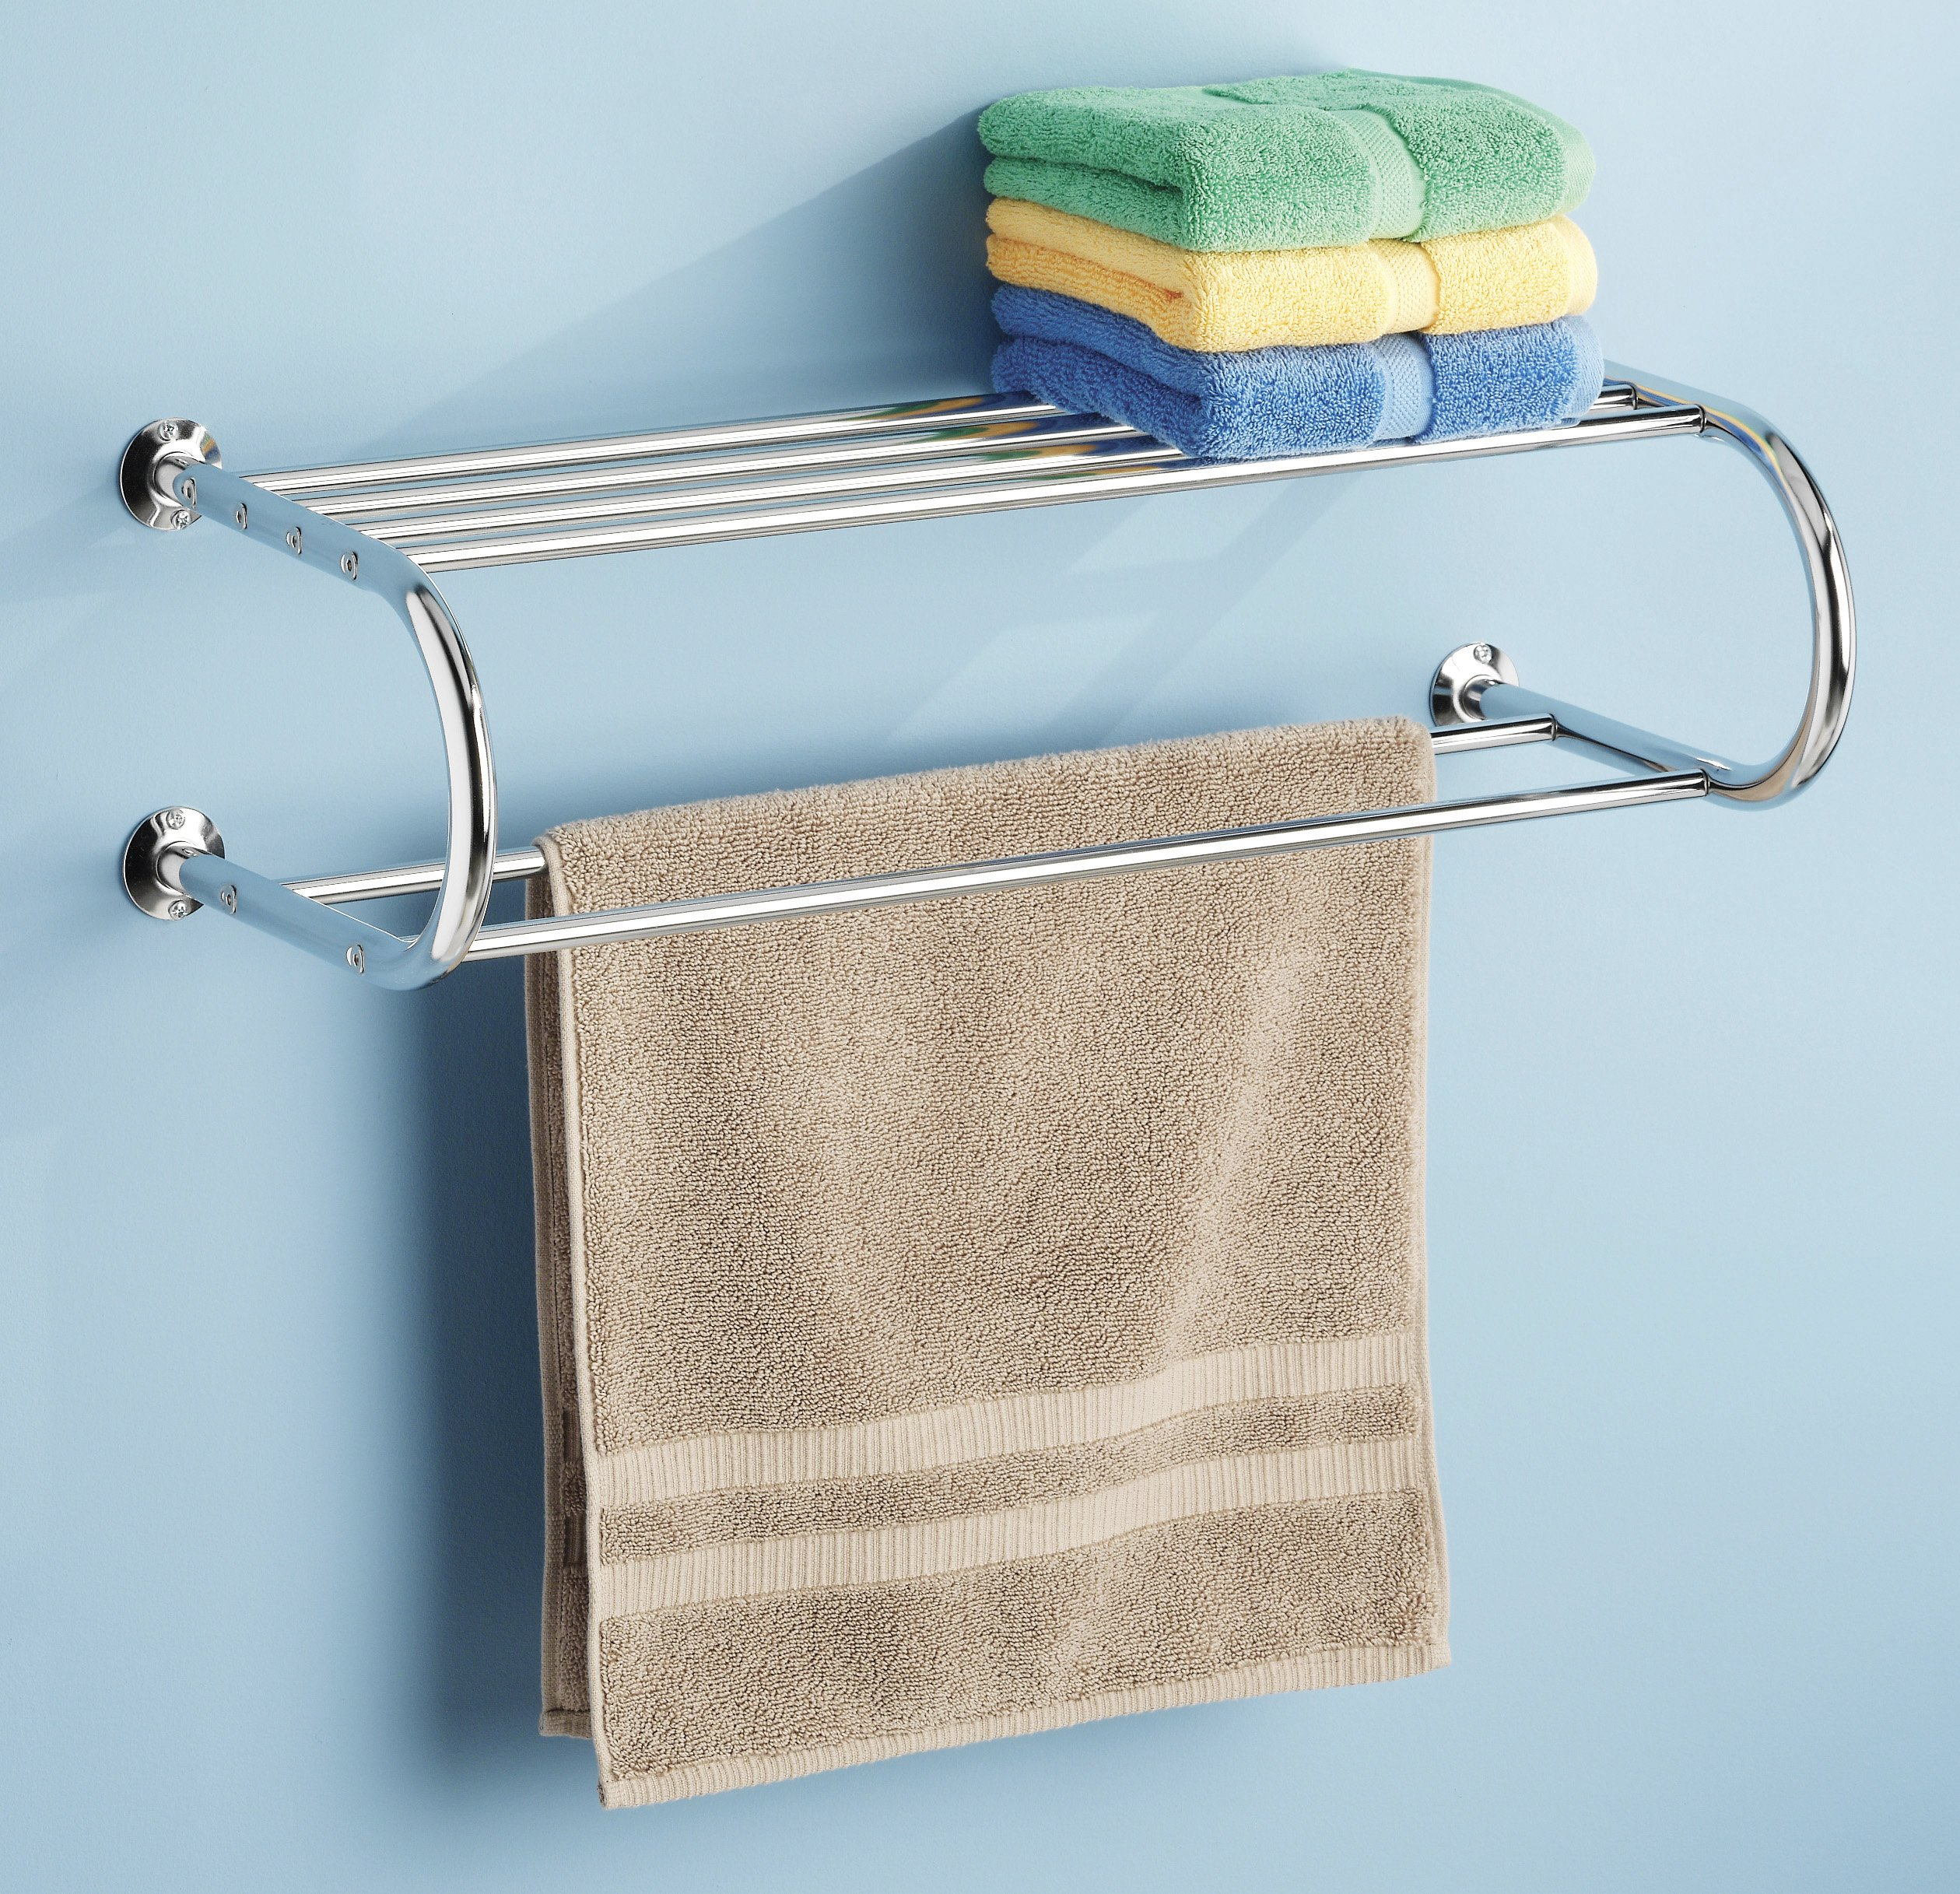 Cheap Chrome Towel Shelf Rack, find Chrome Towel Shelf Rack deals on ...